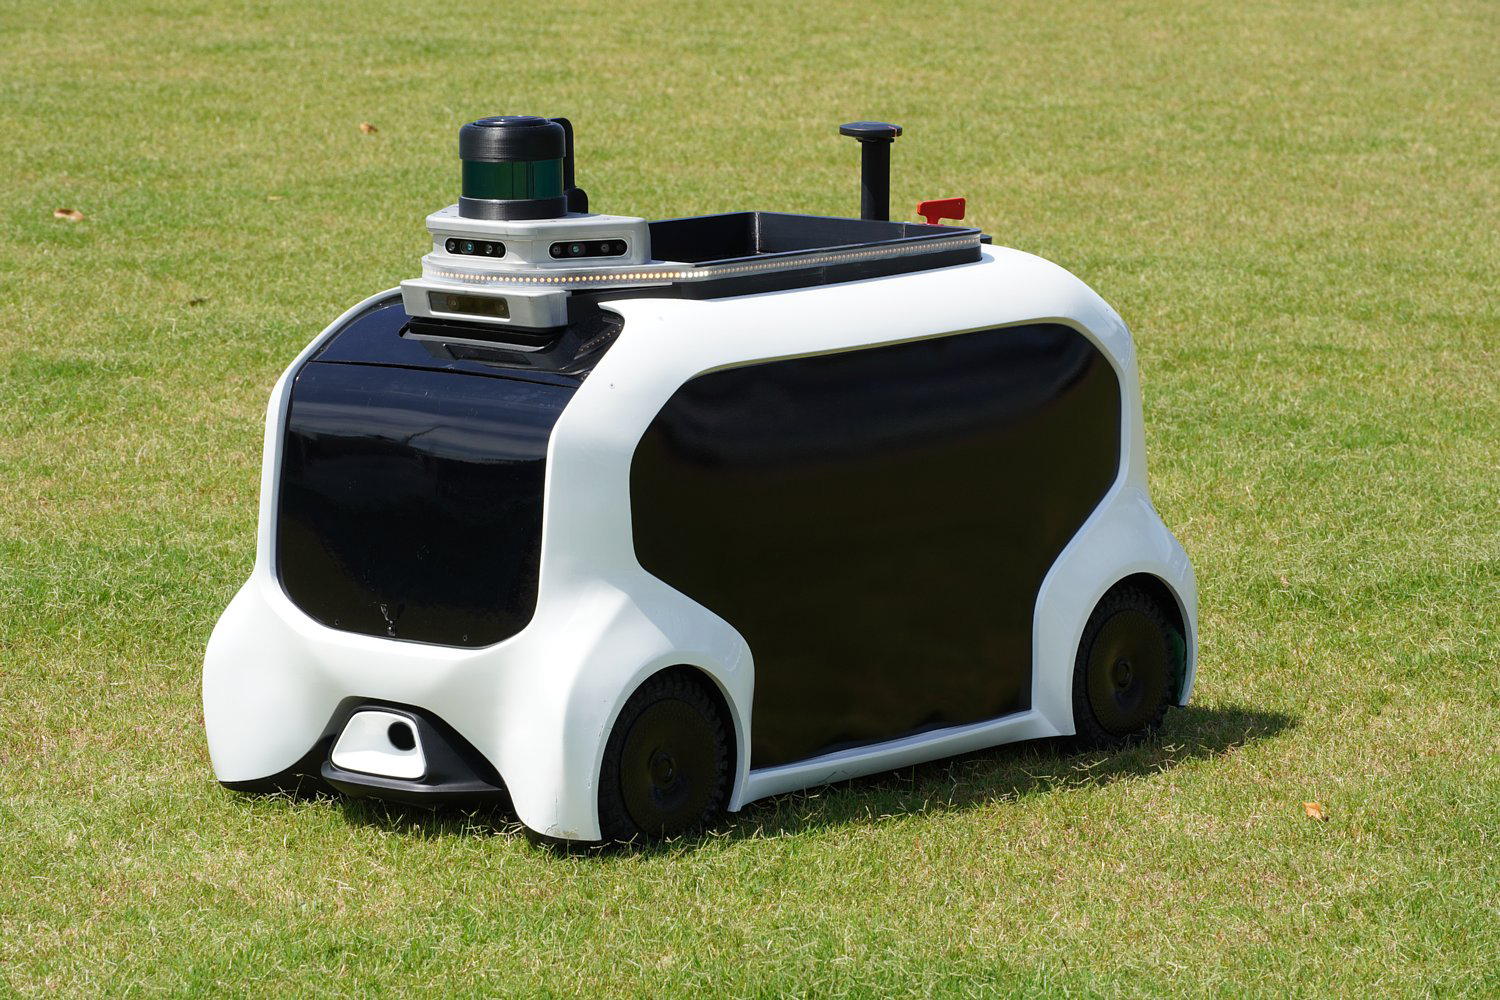 FSR Field Support Robot Field Event Support Robot - Meet the robots Toyota is bringing to the 2020 Tokyo Olympic Games